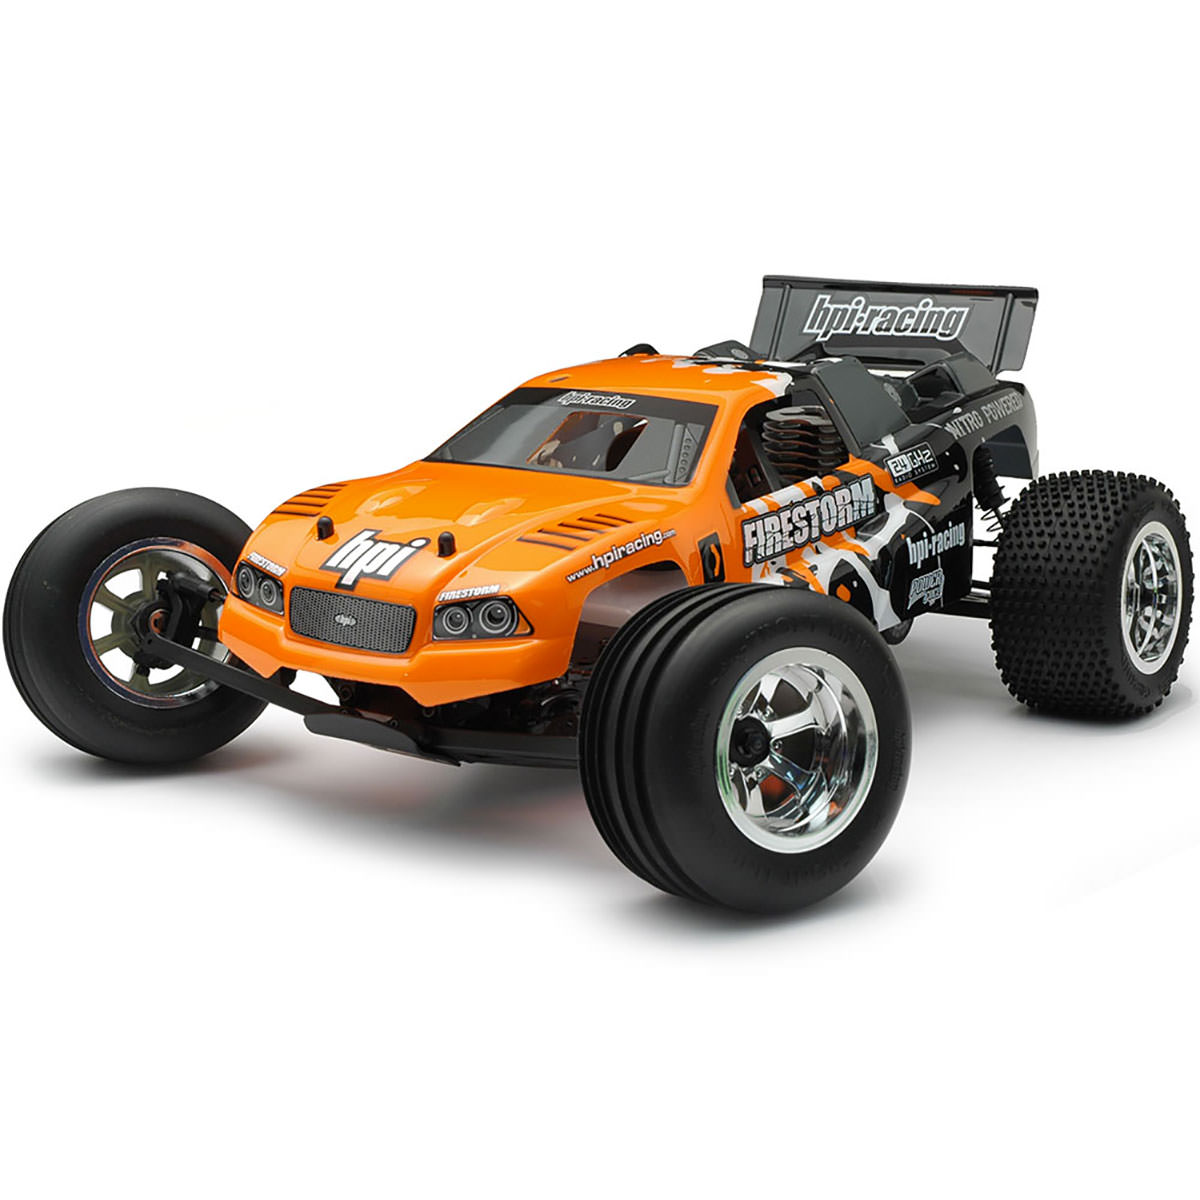 hpi firestorm 10t rc truck at hobby warehouse. Black Bedroom Furniture Sets. Home Design Ideas